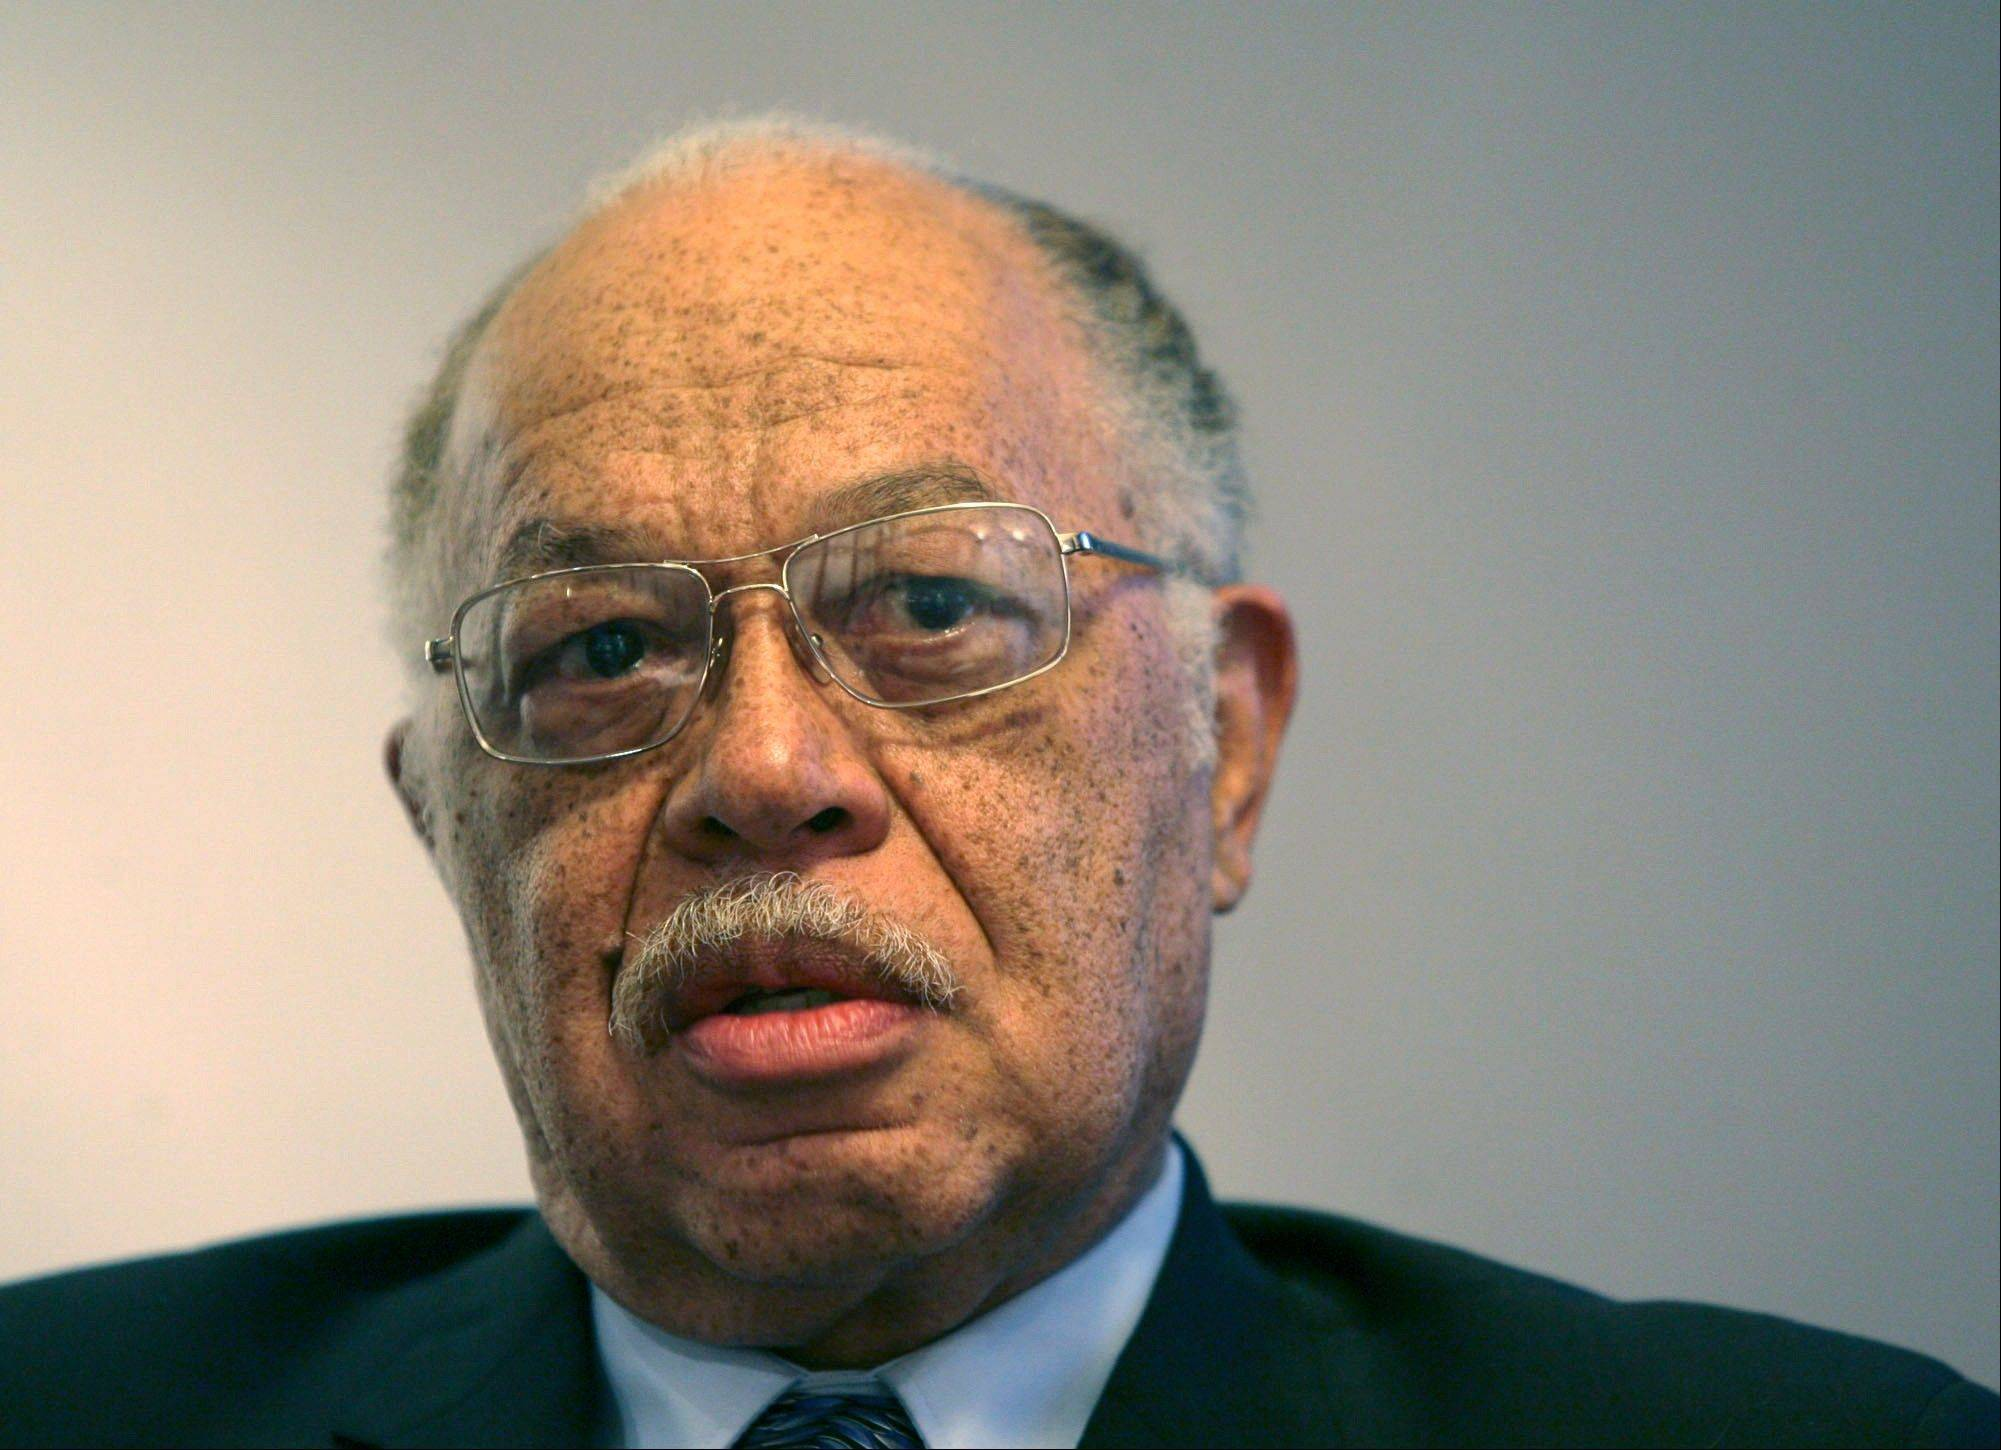 Dr. Kermit Gosnell, an abortion doctor who catered to minorities, immigrants and poor women at the Women's Medical Society, goes on trial today on eight counts of murder, but prosecutors say he's not the only person to blame for the deaths.